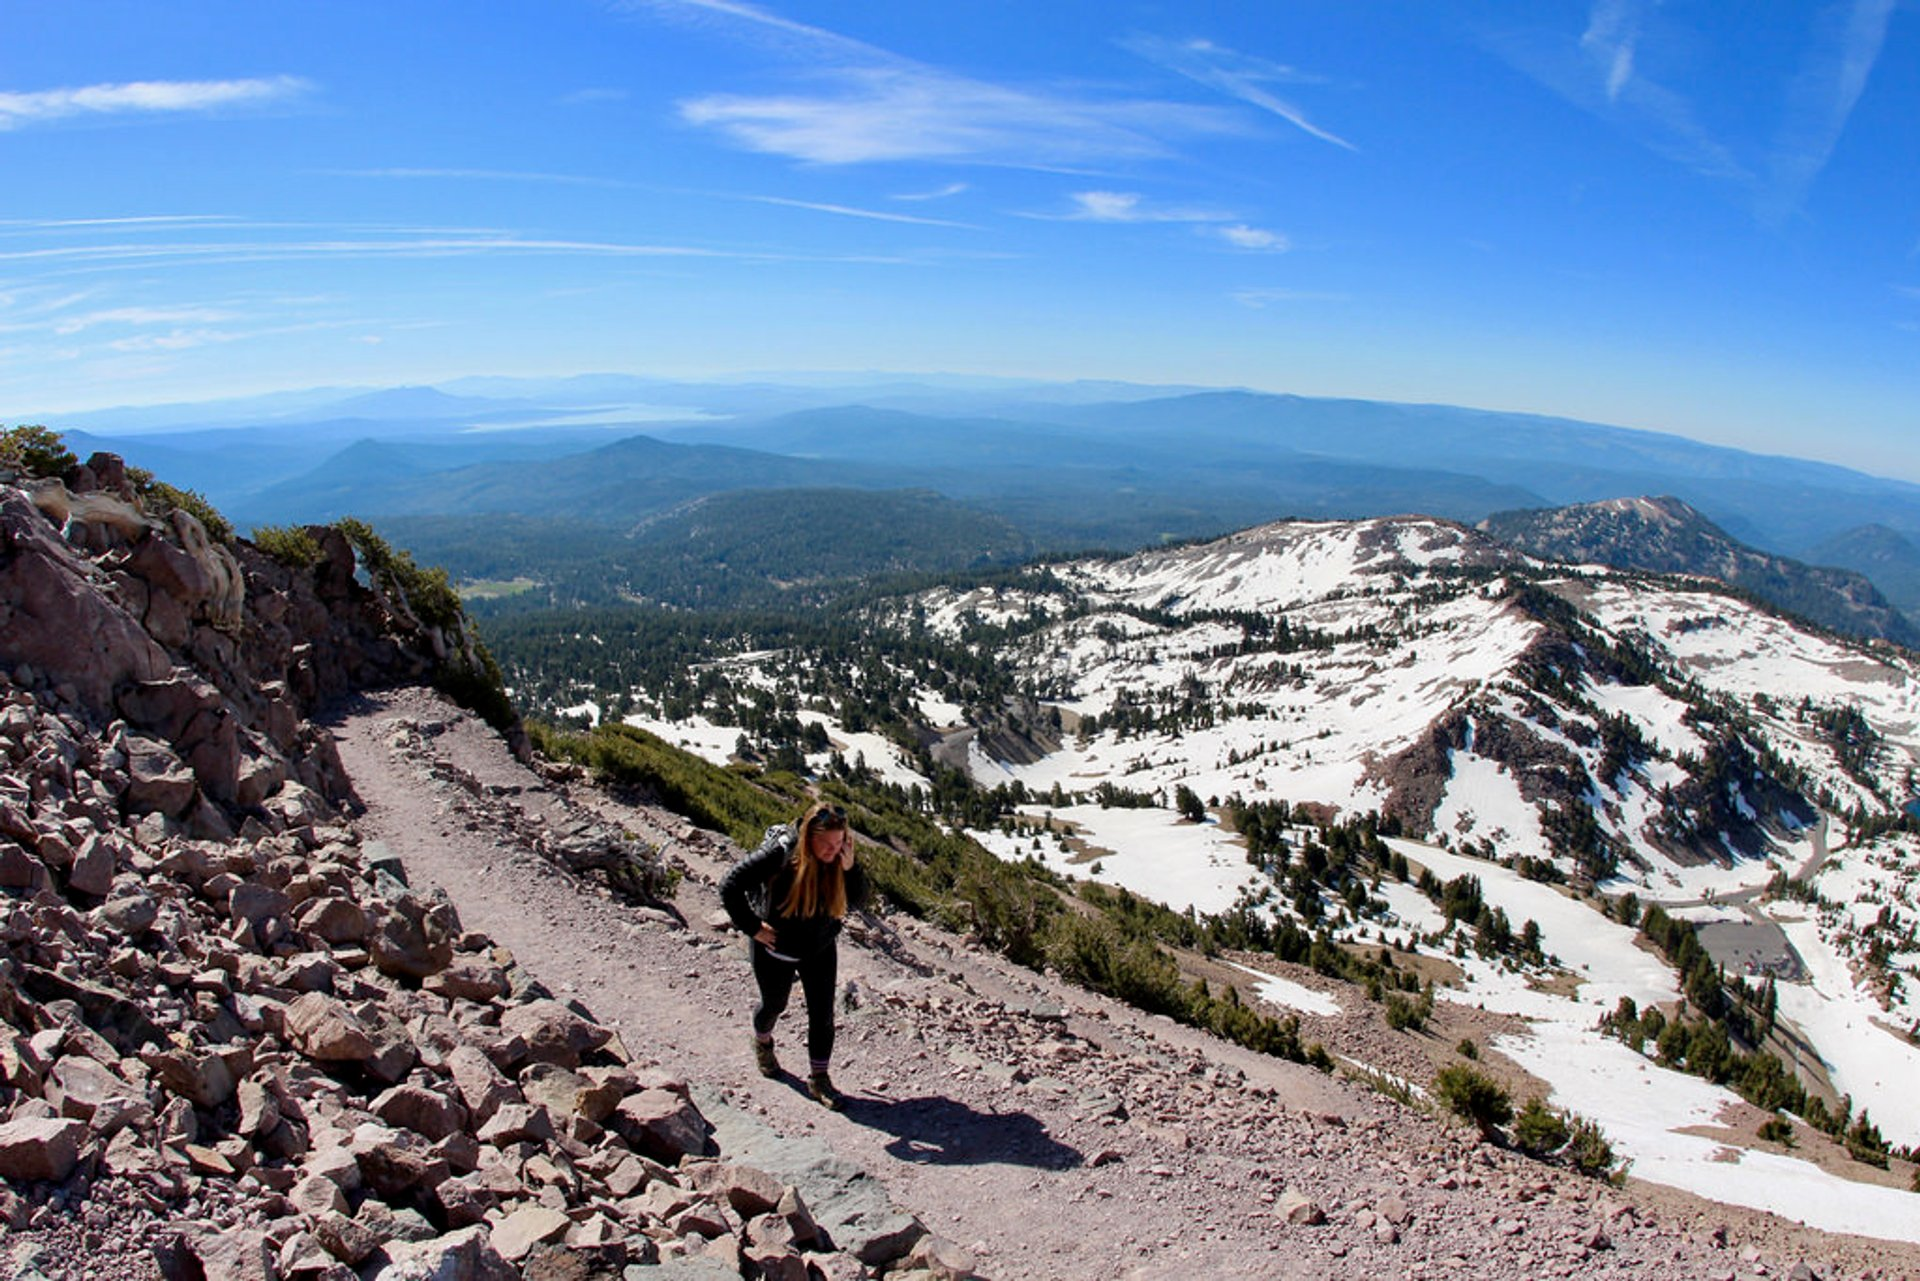 Hiking the Lassen Peak Trail 2019